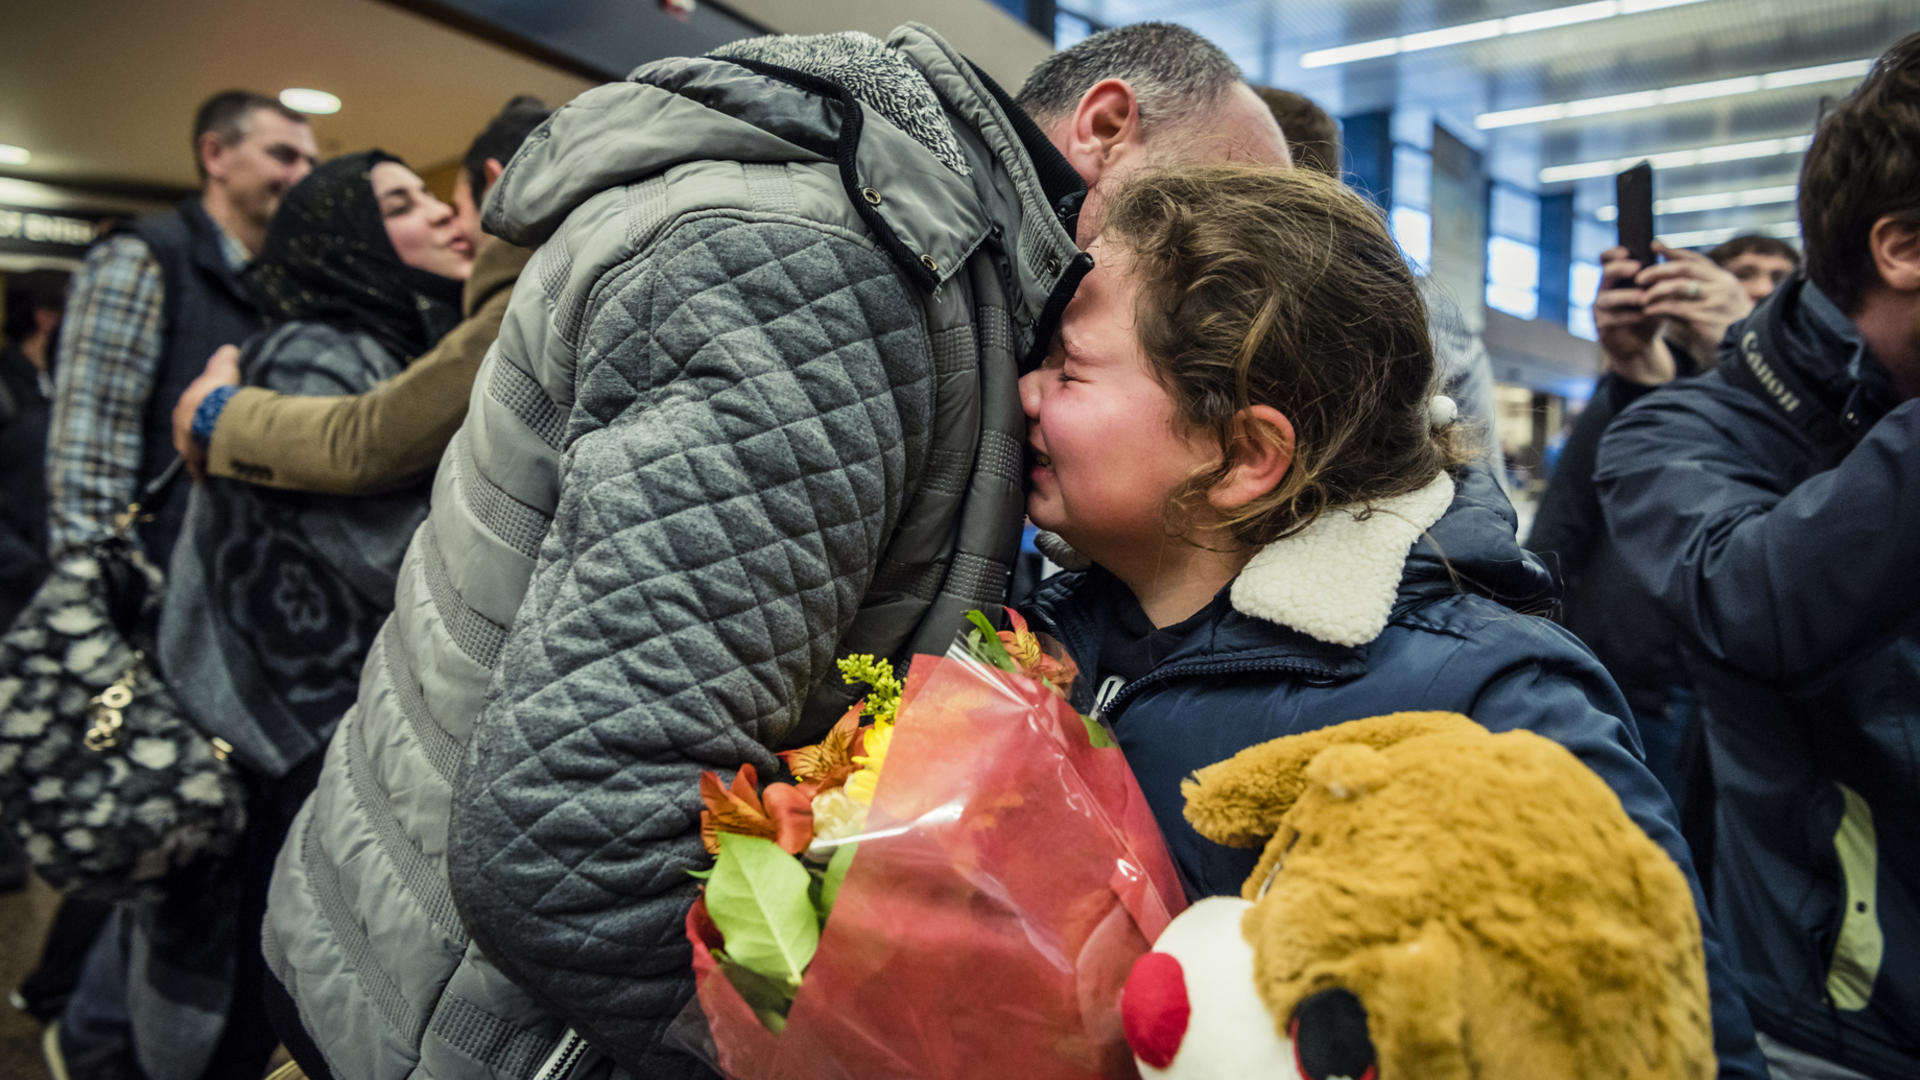 Alaa hugs her brother-in-law after arriving at Sea-Tac International Airport